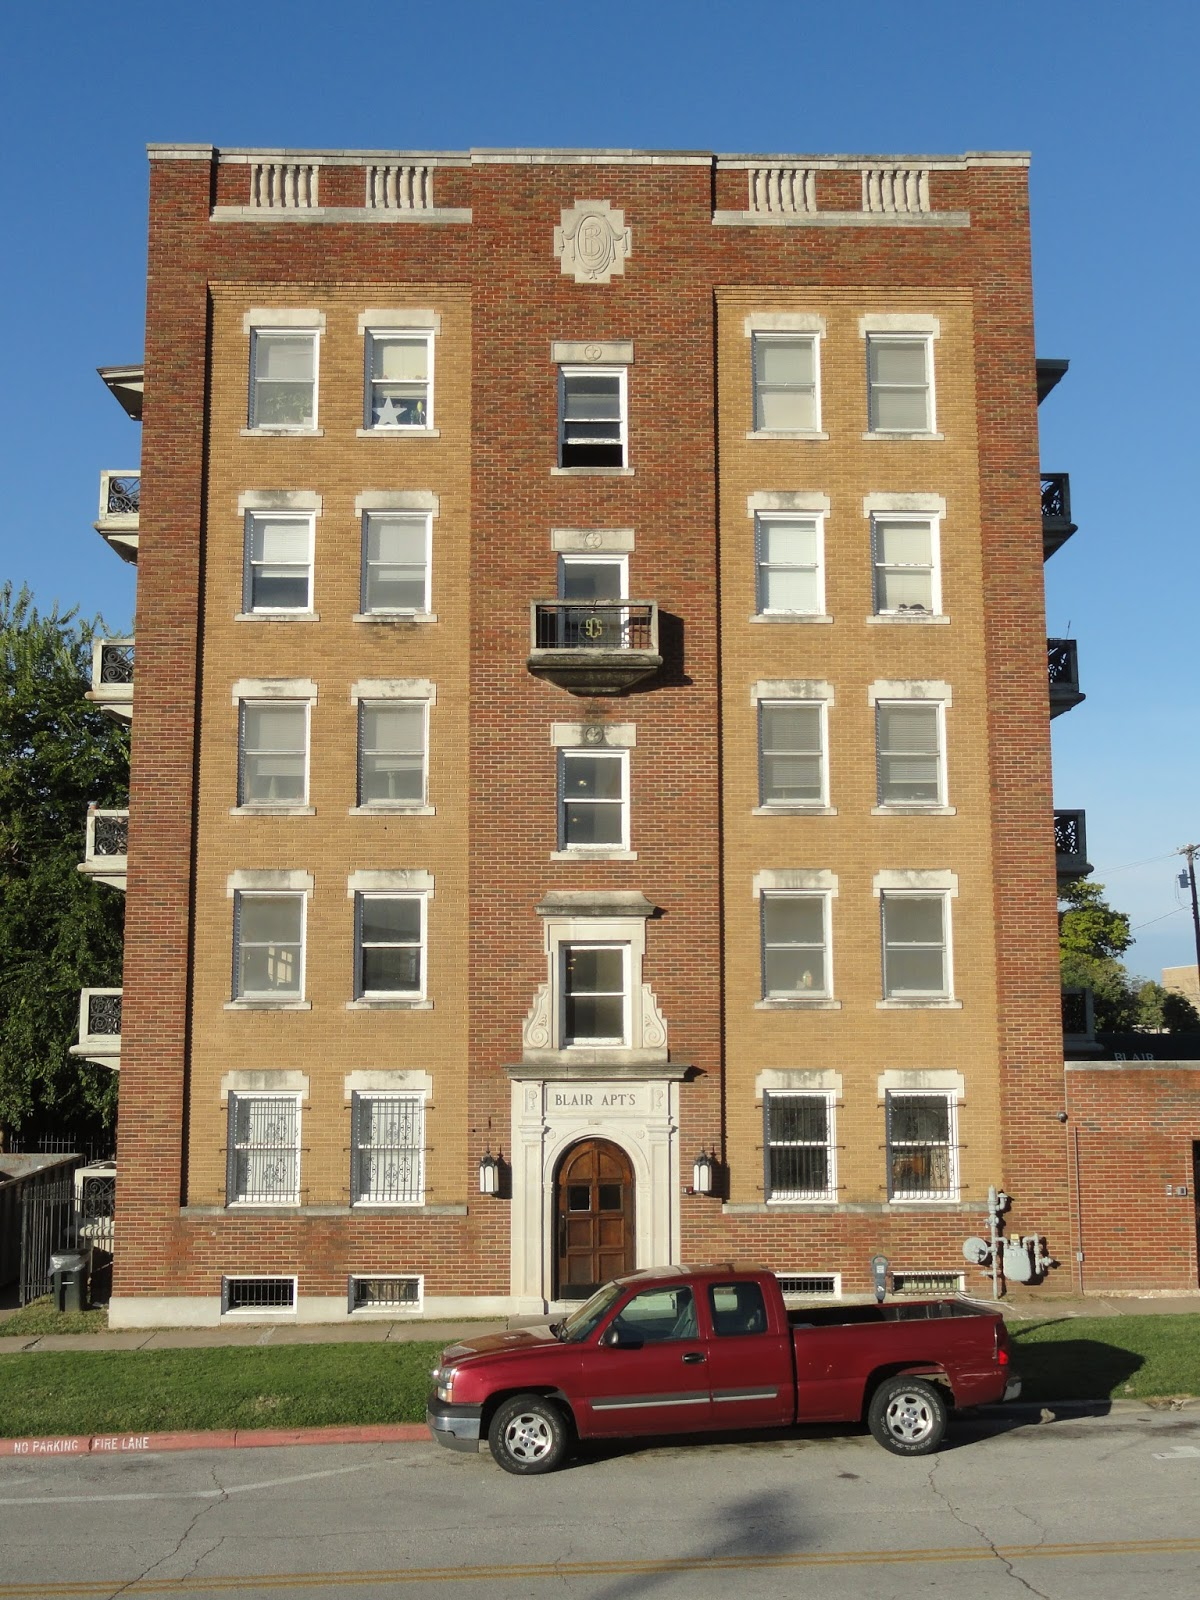 Mr Brady Was One Of The Original Founders Tulsa Who Built His Mansion About A Block Away From This Apartment Building